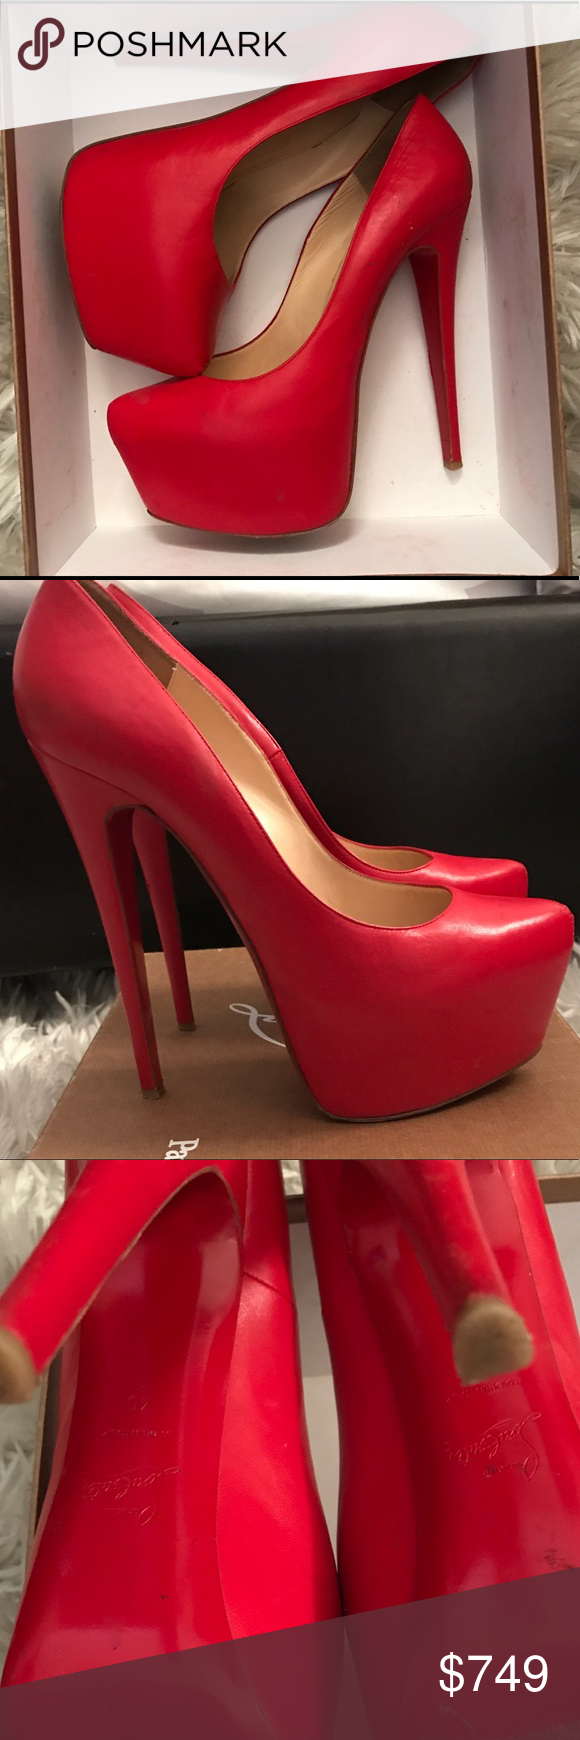 edf908cdddb4 ... wholesale christian louboutin daffodil pumps you cant go wrong with a  classic christian louboutin red 80427